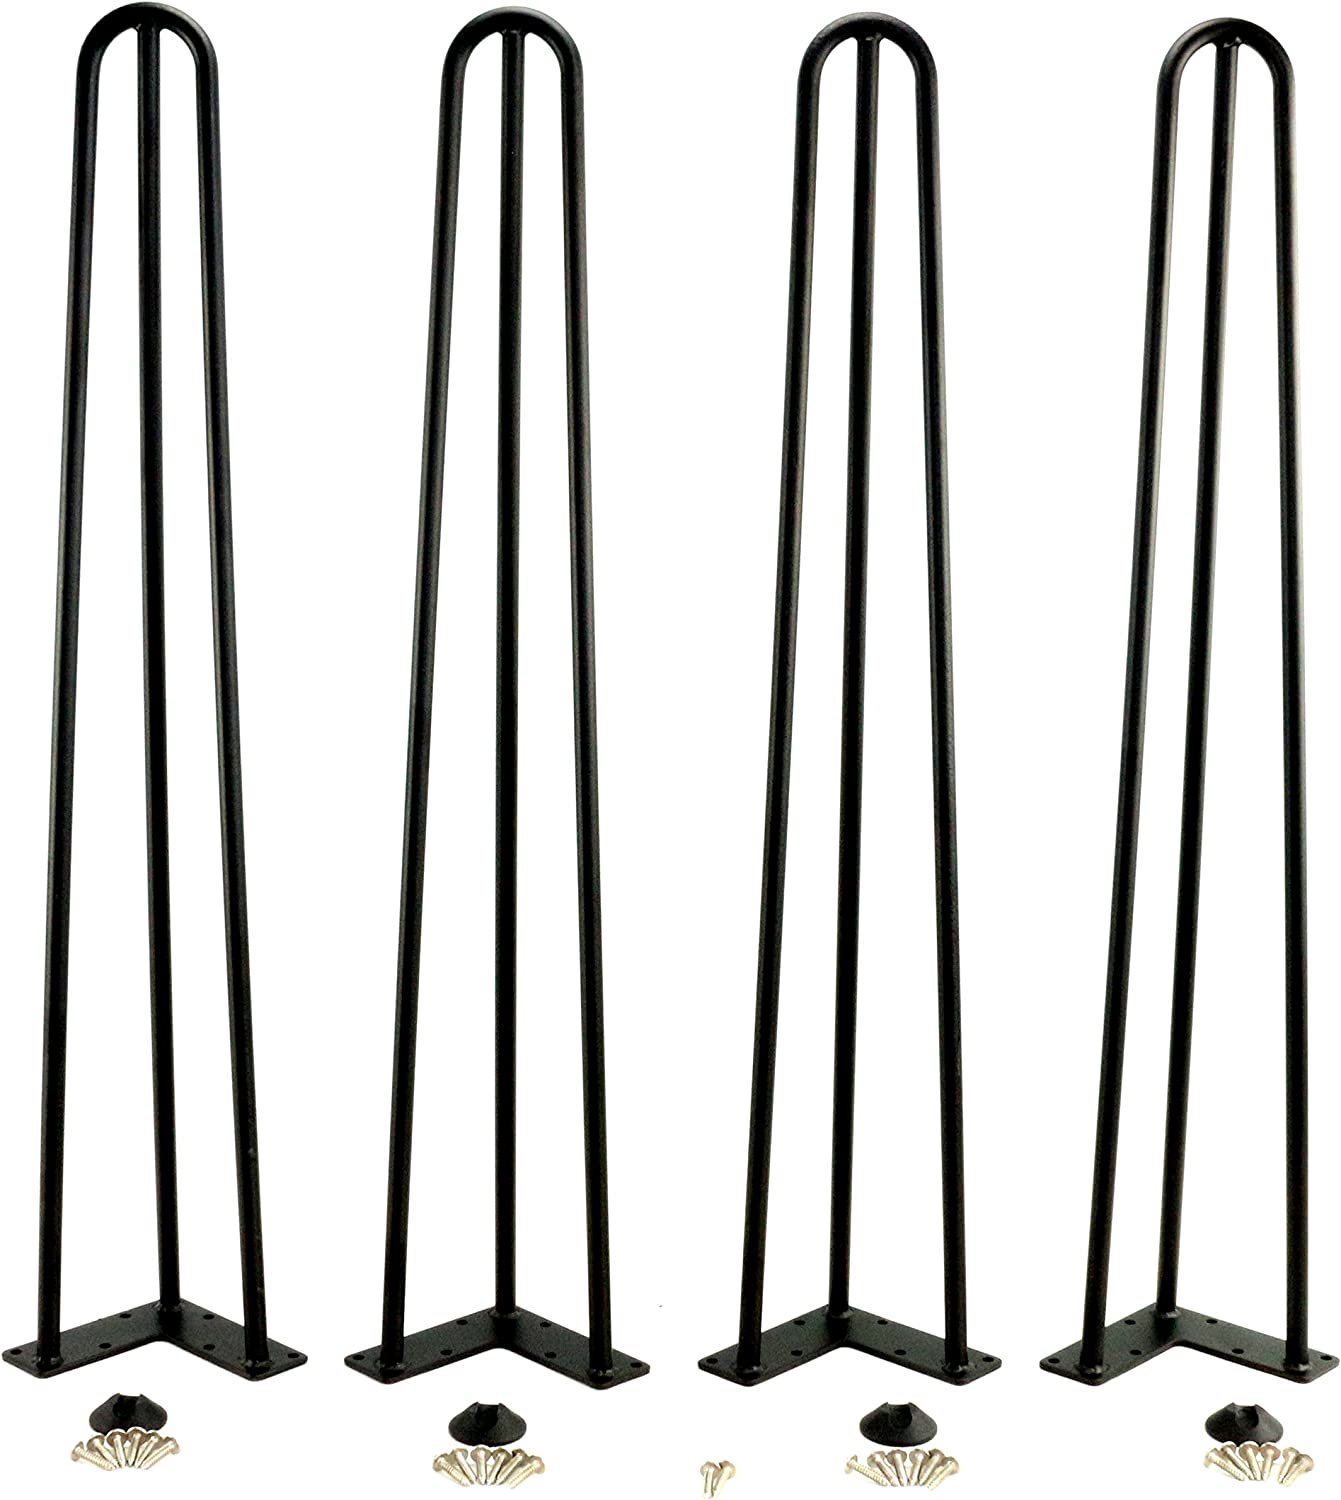 Black Hairpin Metal Table Legs,Coffee Table,Living Room Table Leg,71 cm Height,2 Wire of 4 Pcs (86CM-3Rod)